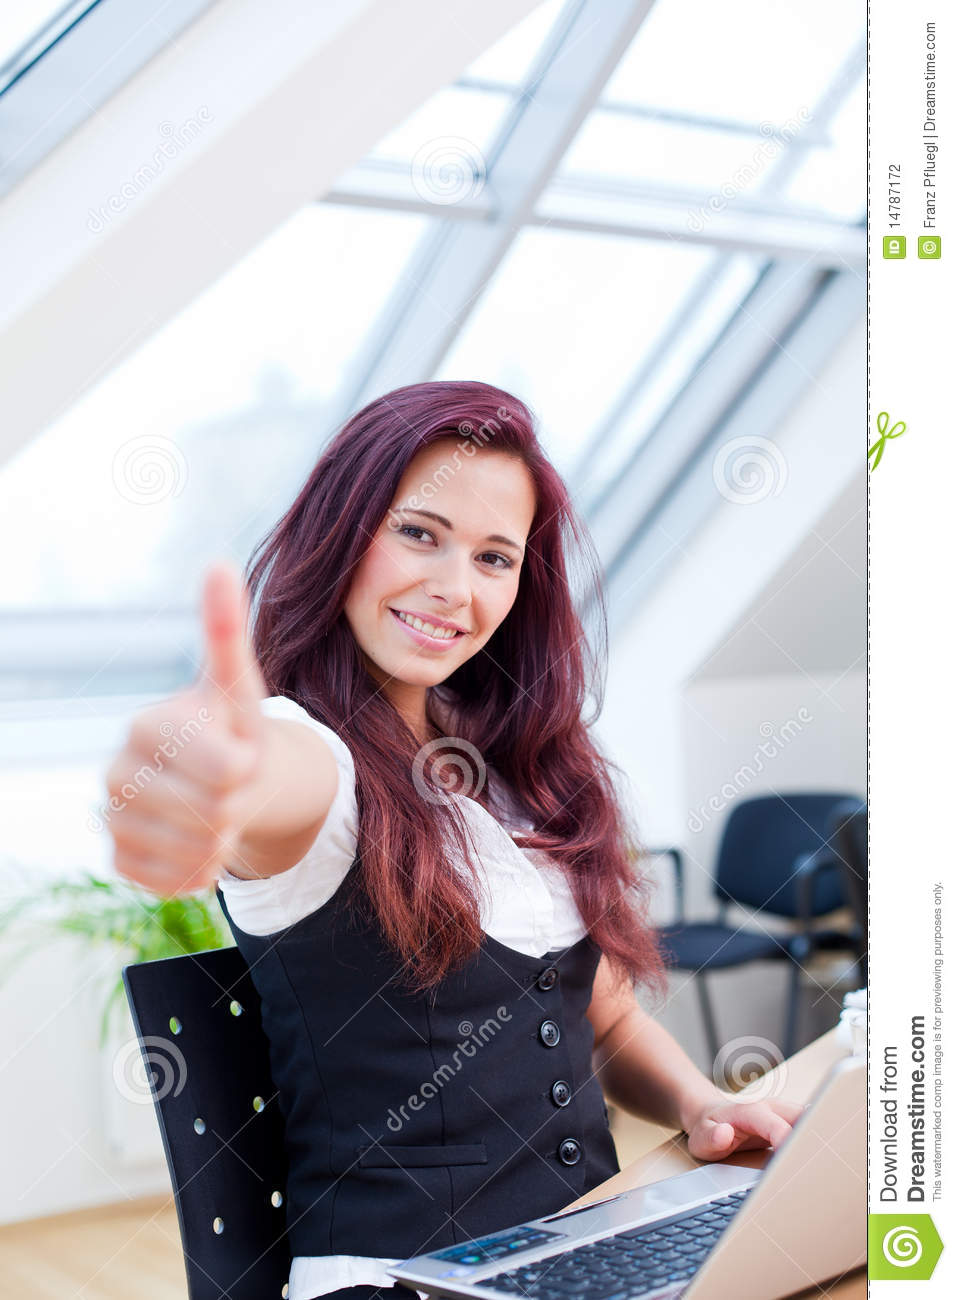 Very Good Job Stock Photo Image Of Clerical Place Hair